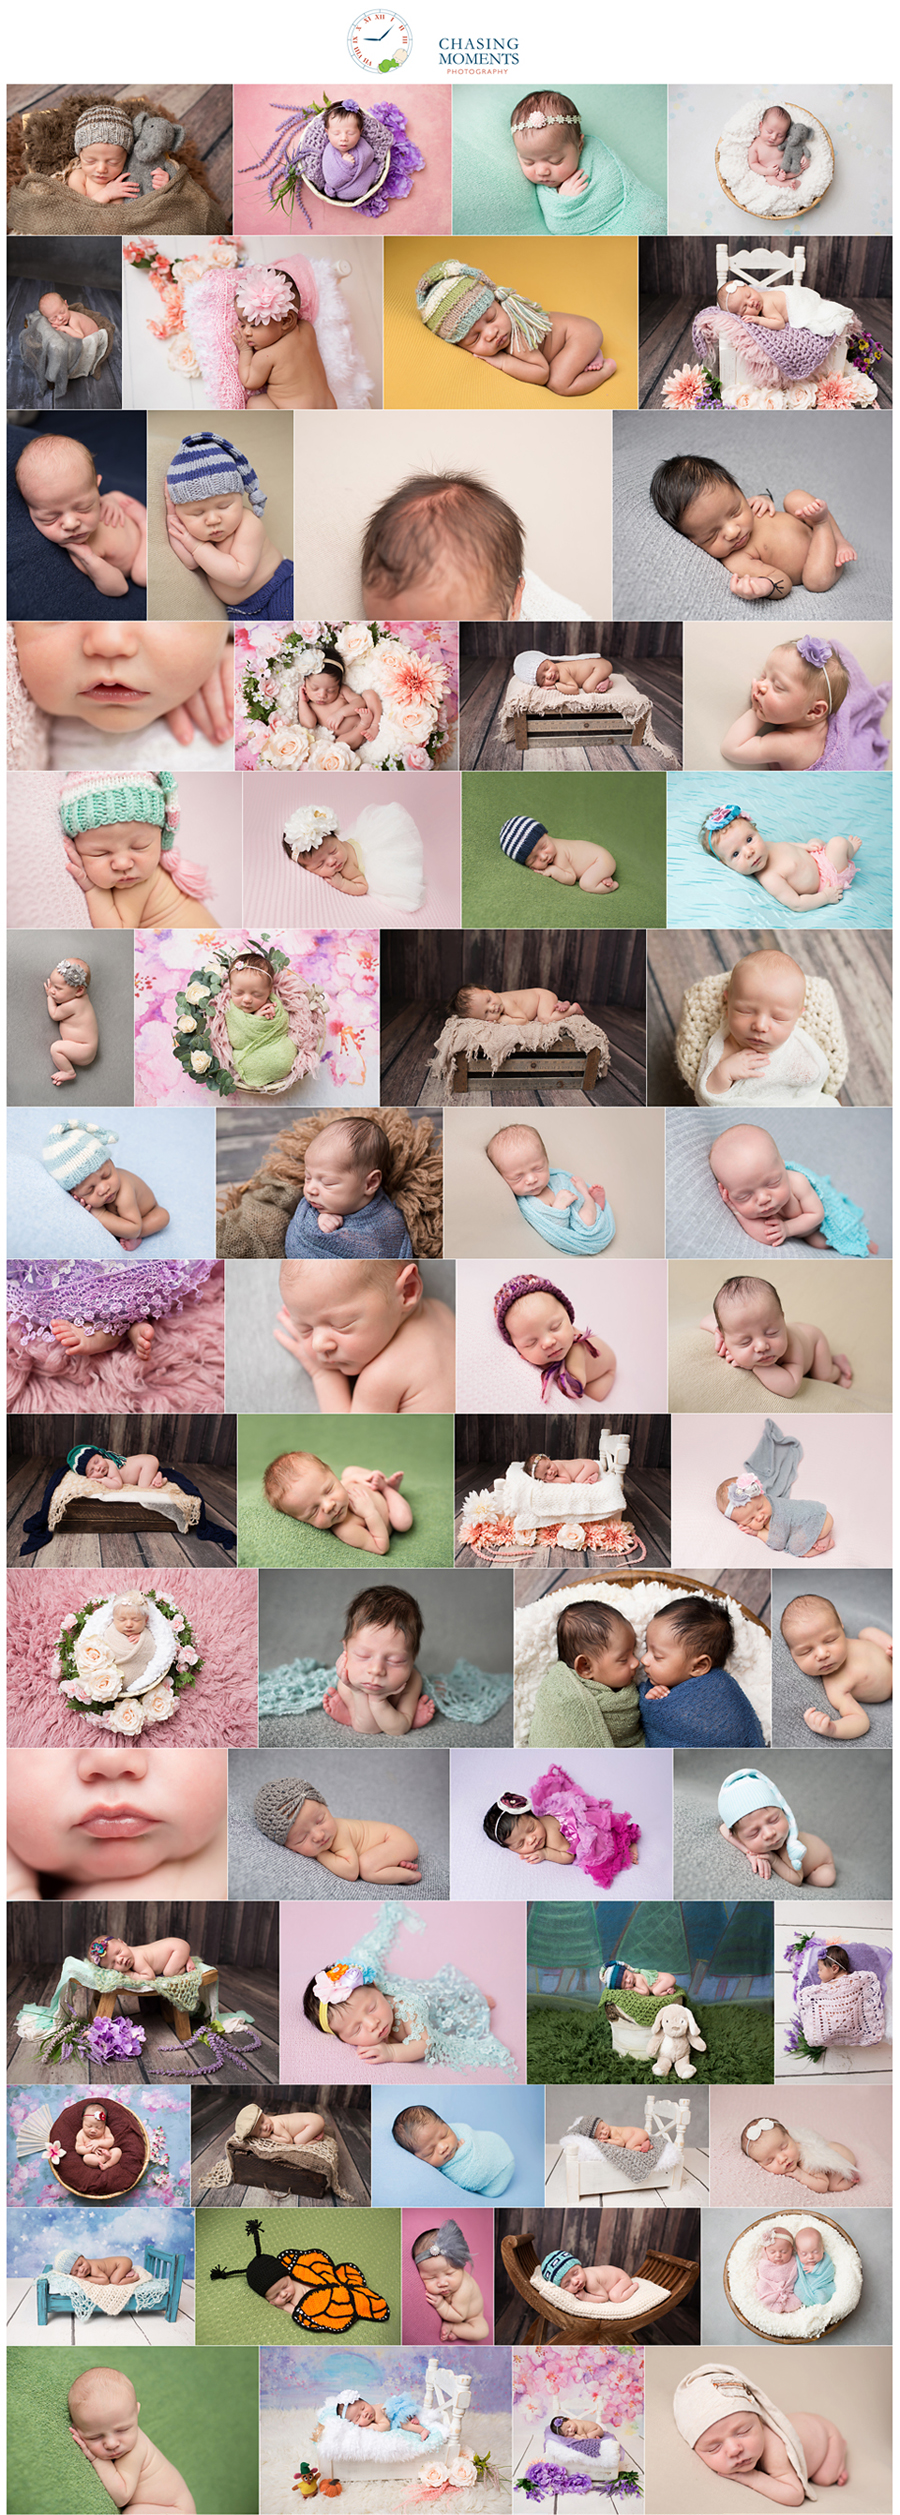 northern virginia newborn photographer_2019 babies_weba_1